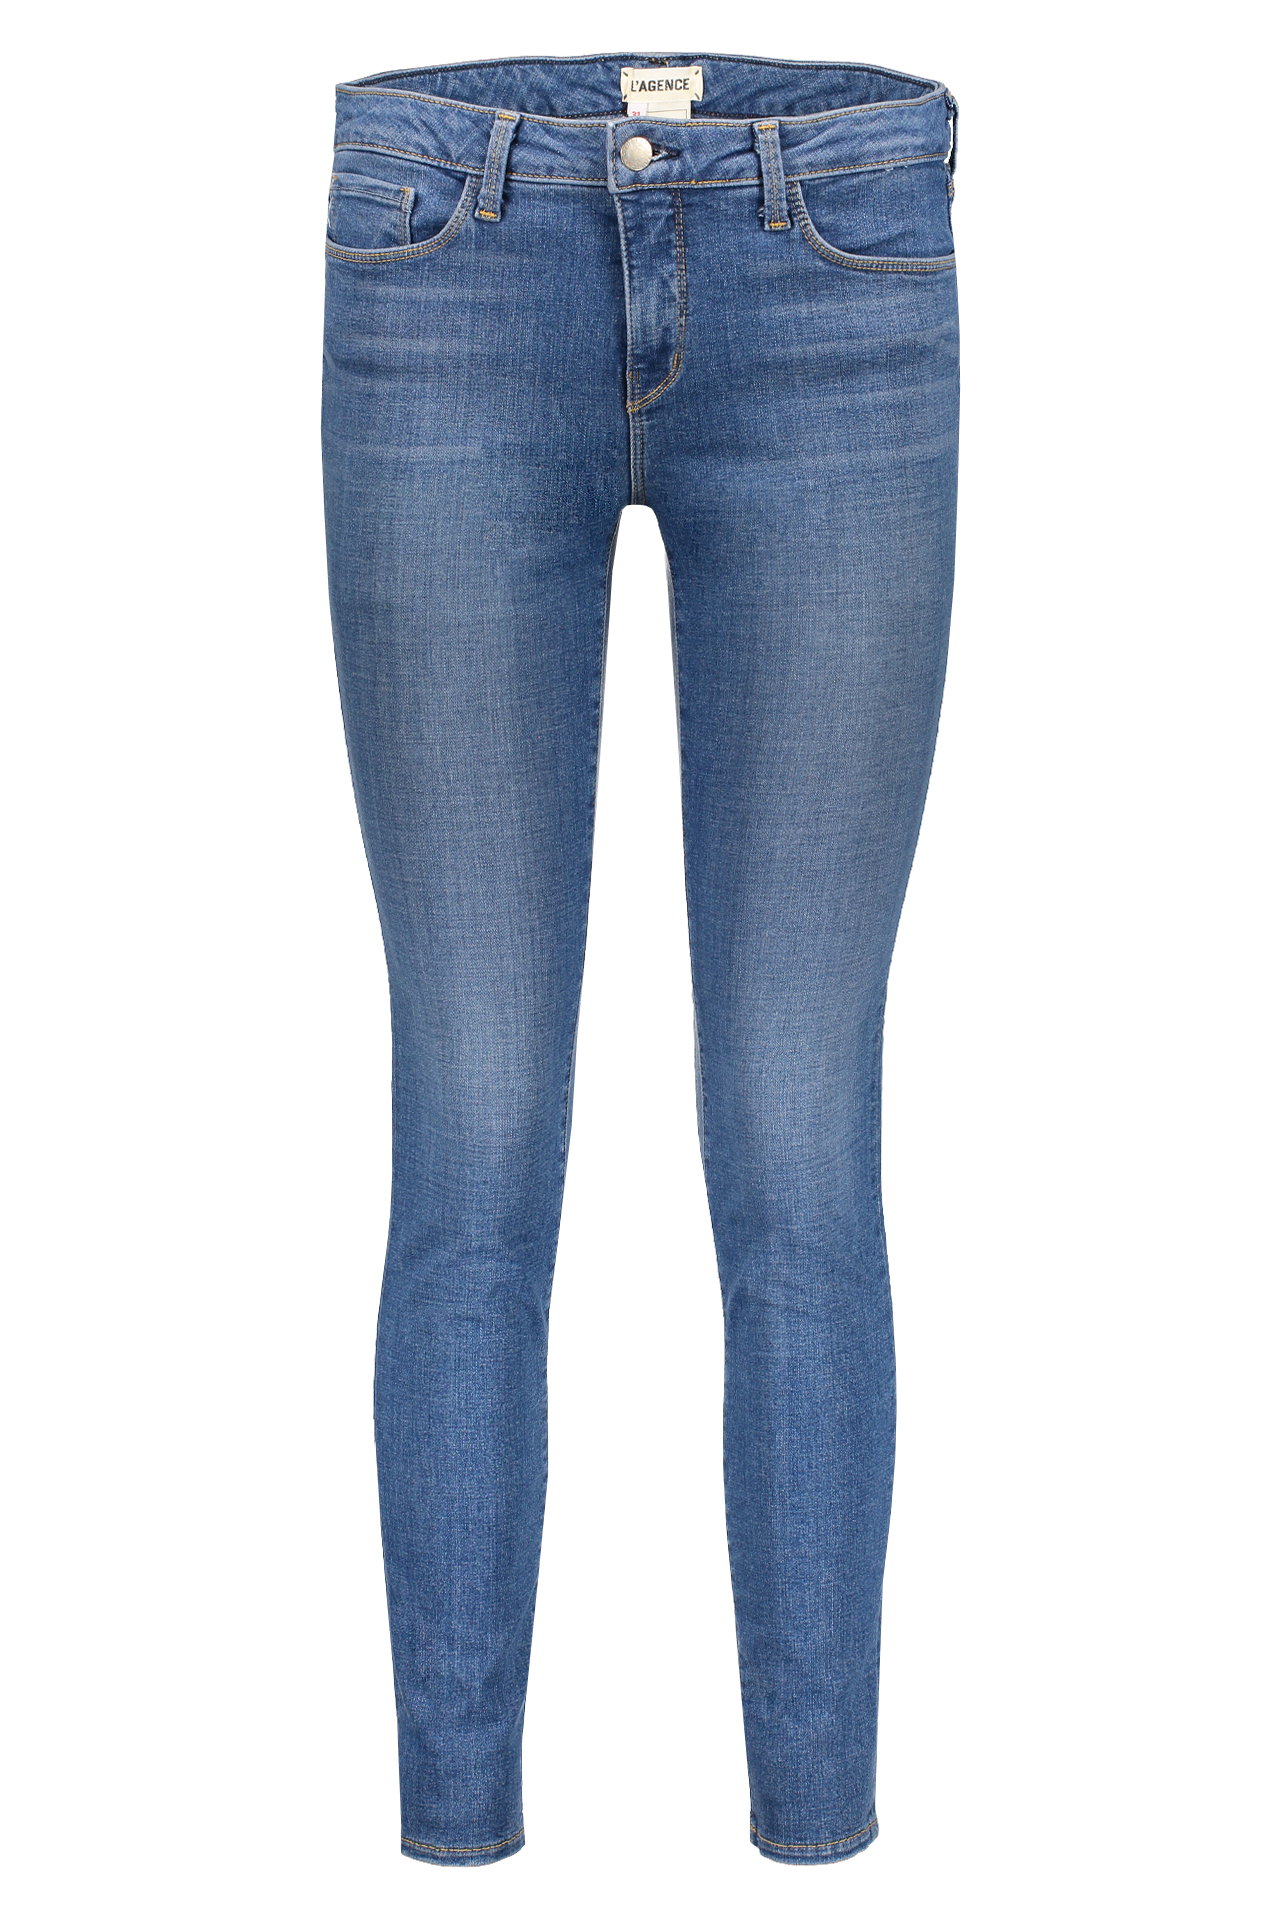 STK CHANTAL SKINNY LIGHT VINTAGE